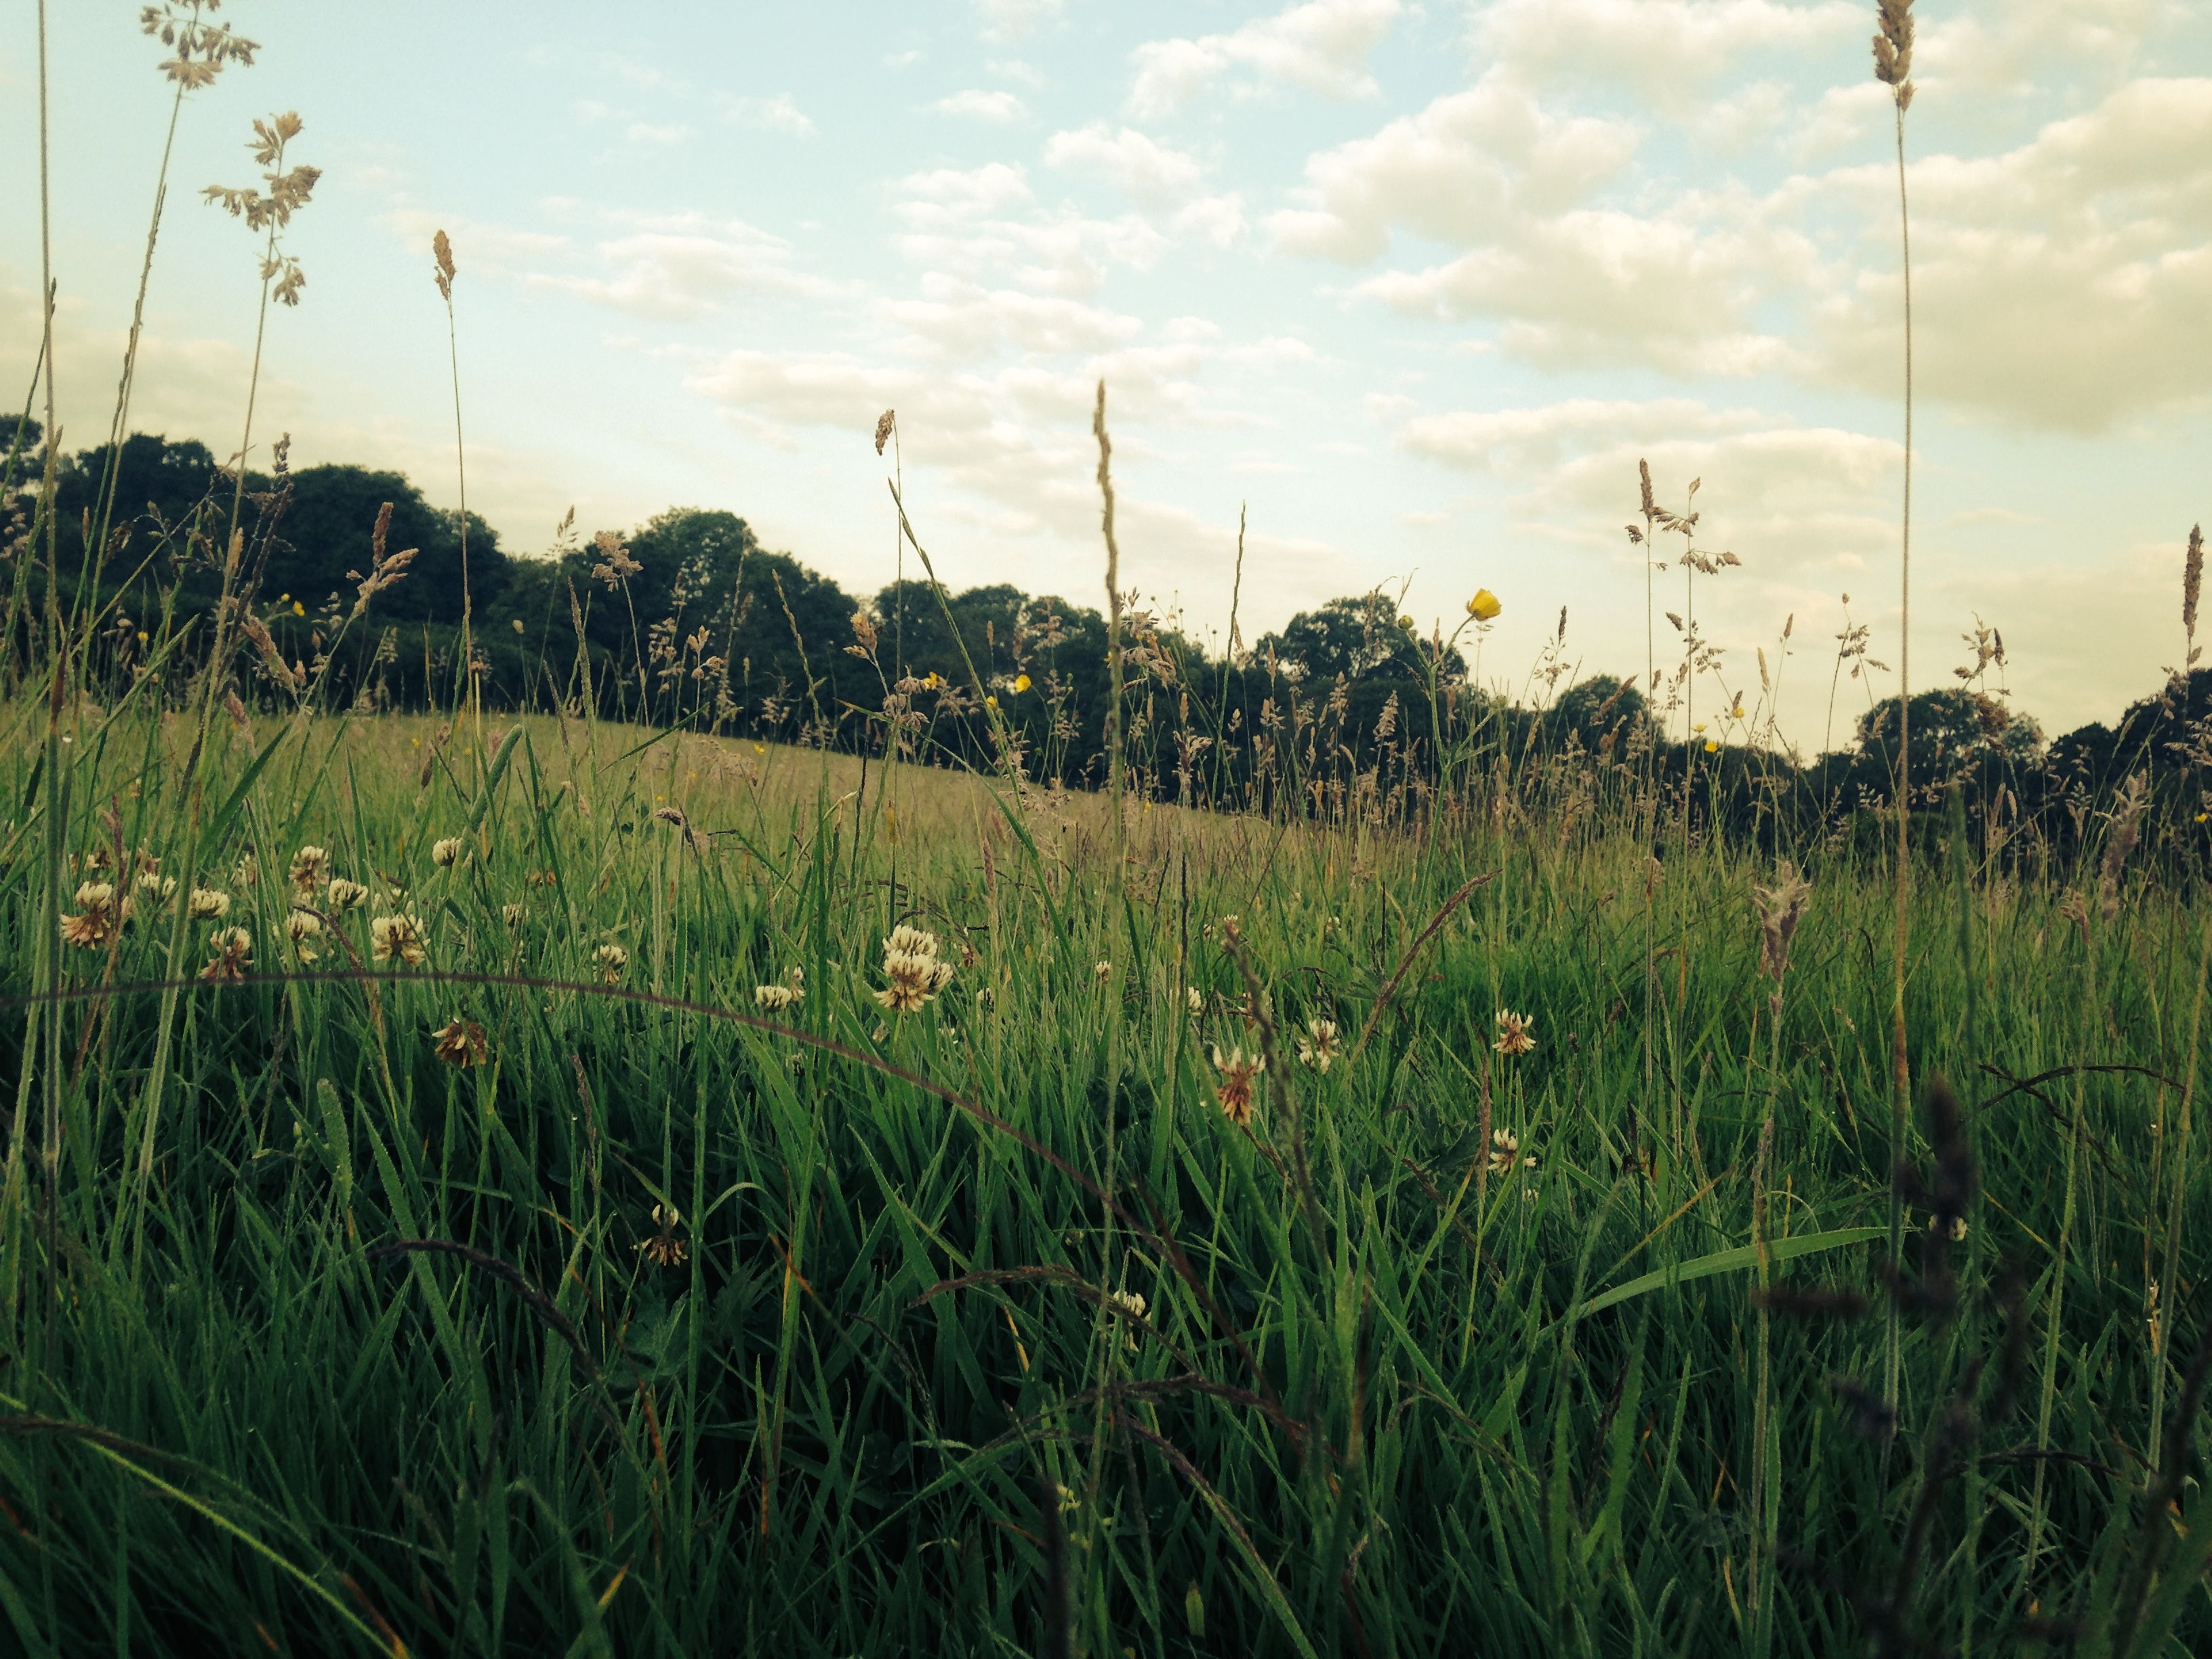 Meadow grass contains essential nutrients that, when dried in hay, will keep the ponies sustained over the winter.